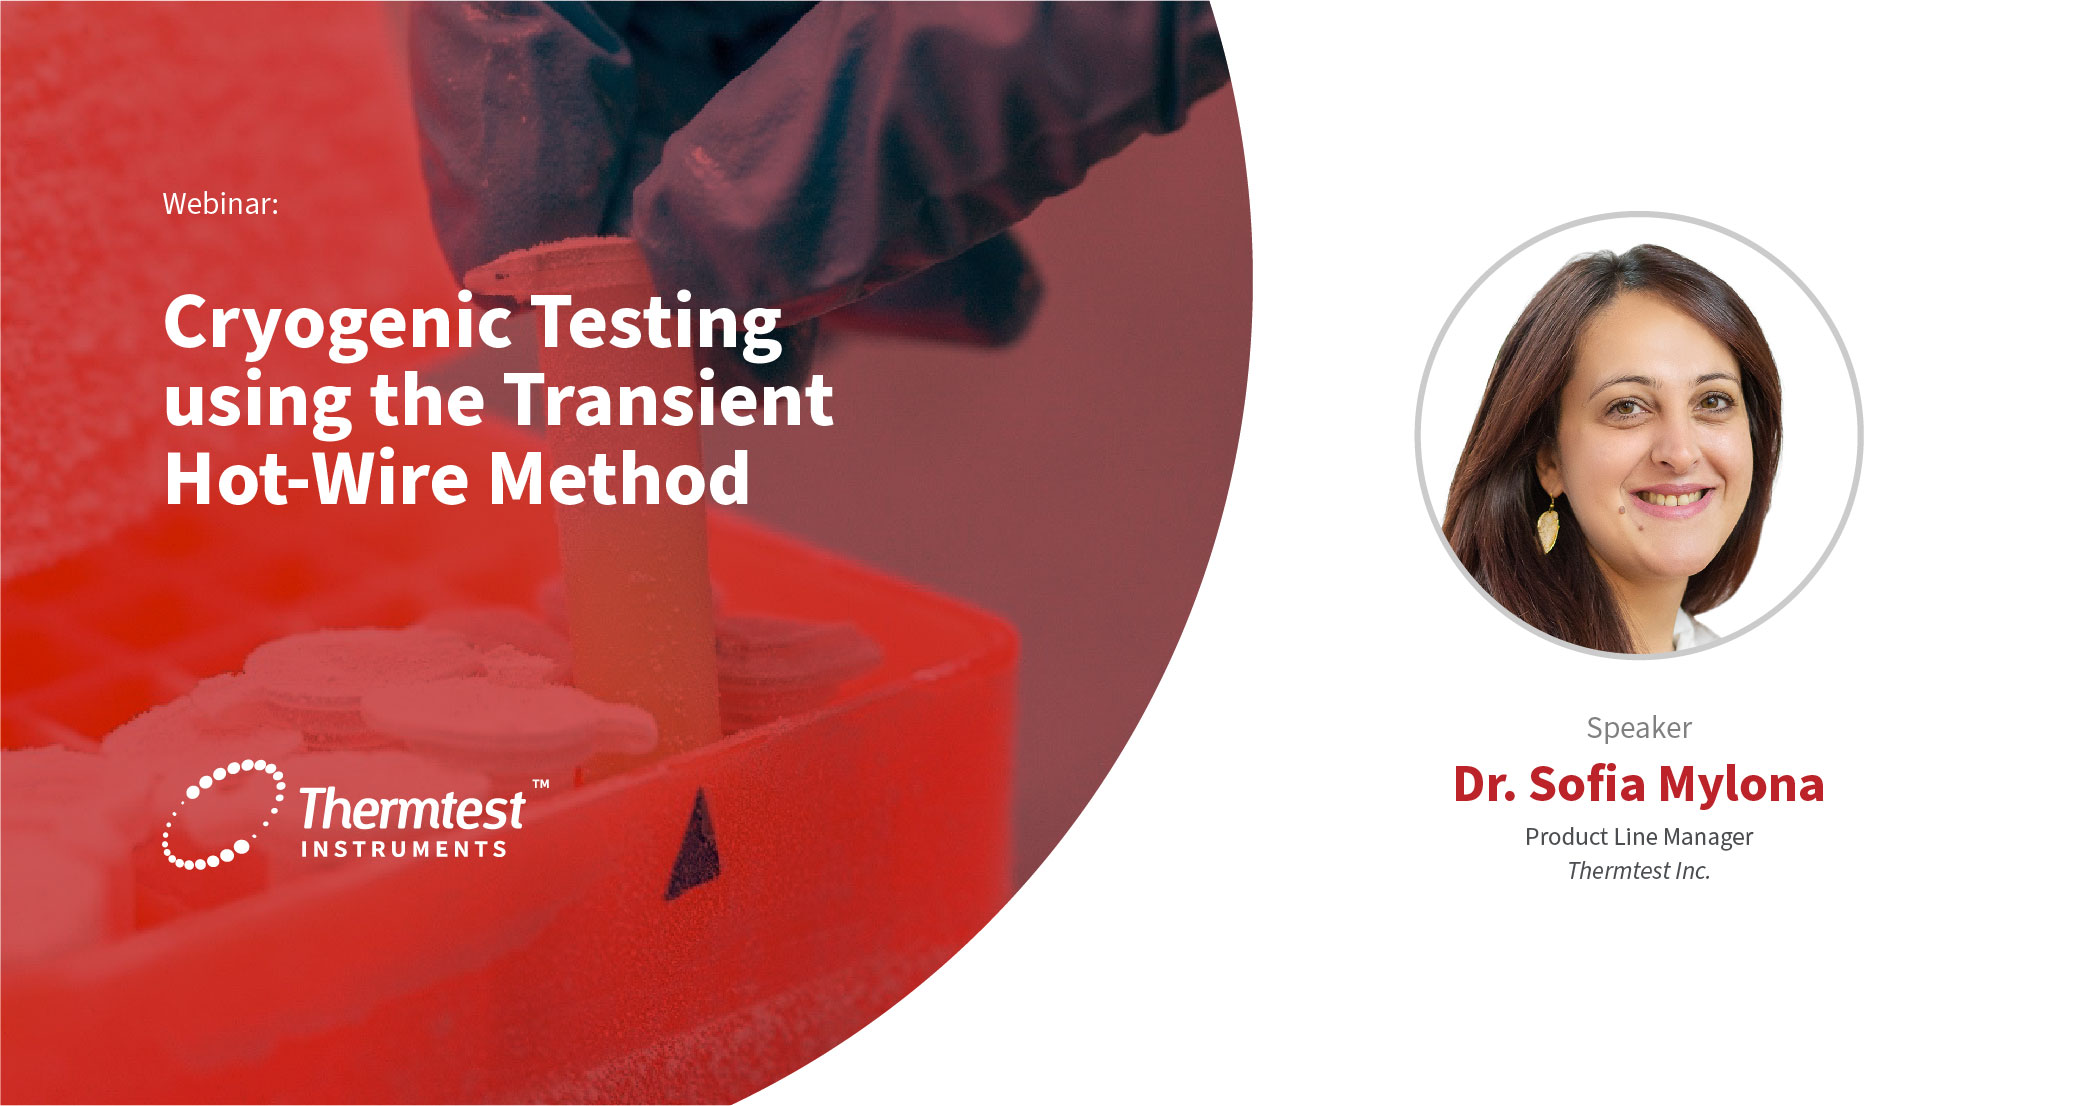 Cryogenic Testing using the Transient Hot-Wire method